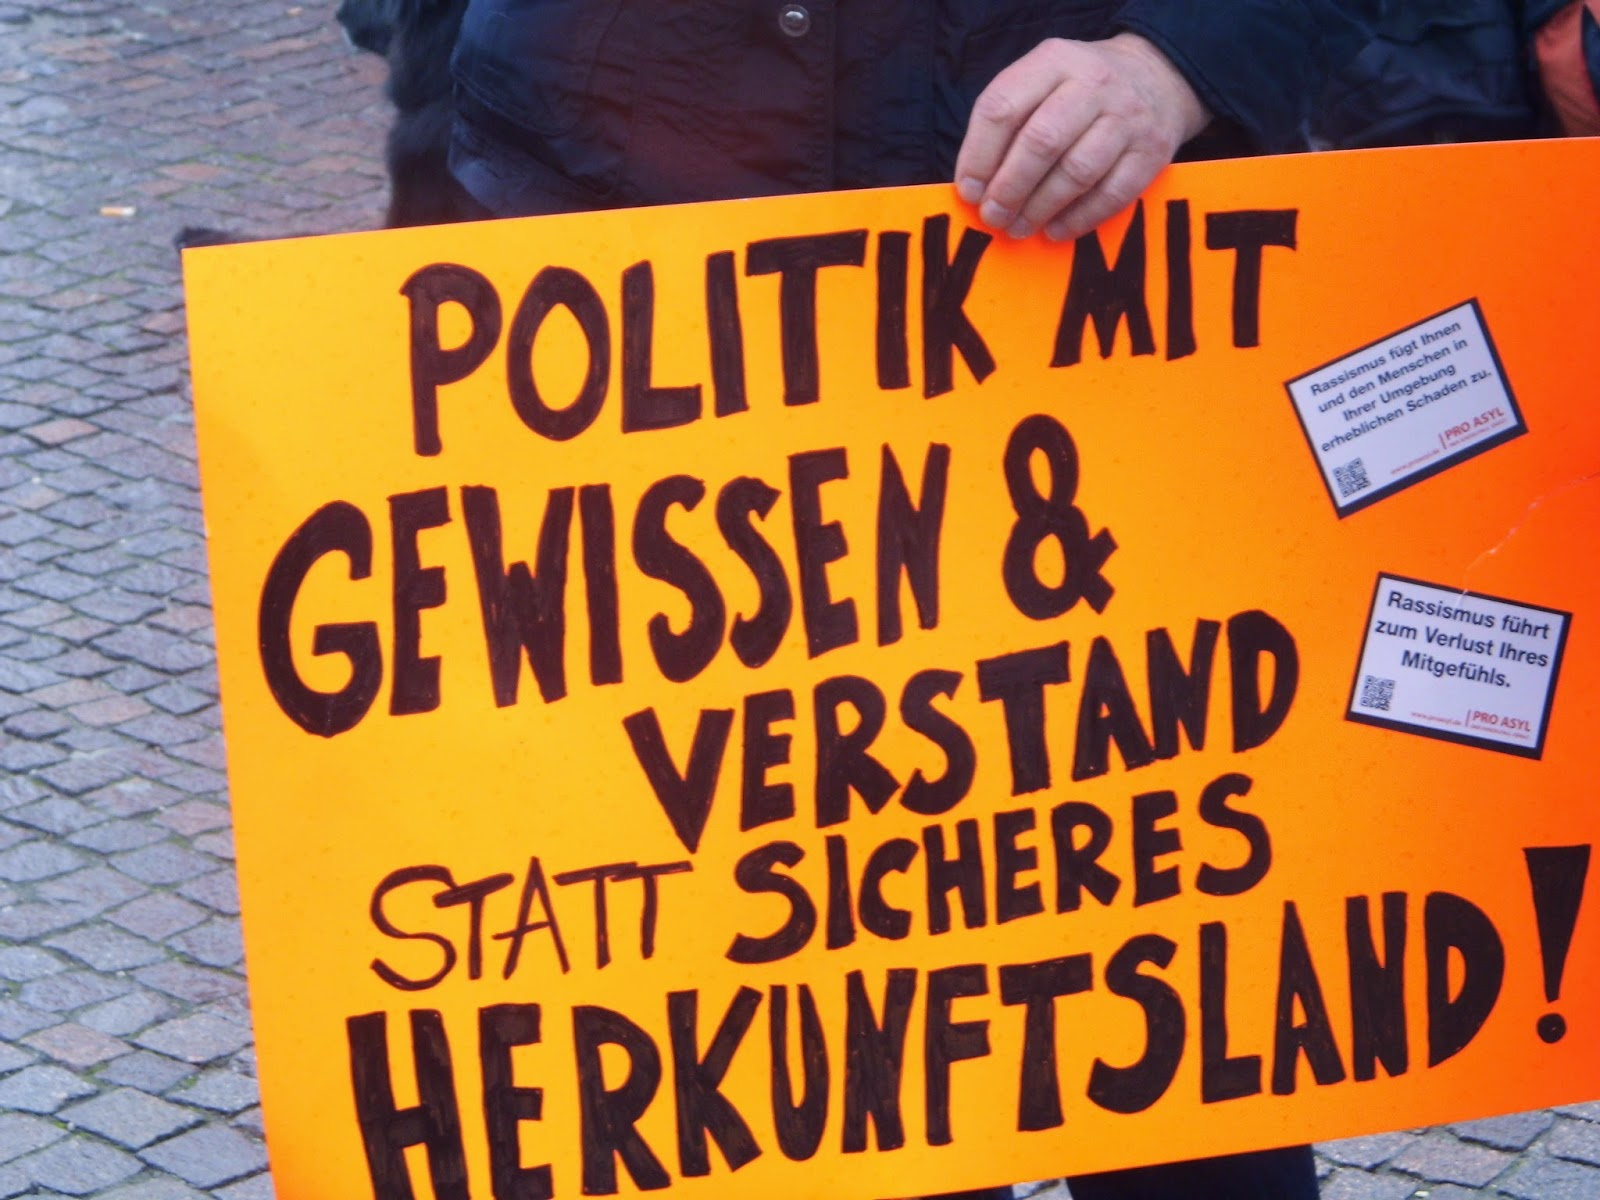 https://upload.wikimedia.org/wikipedia/commons/3/3b/Demo_Sicheres_Herkunftsland_indymedia.jpg